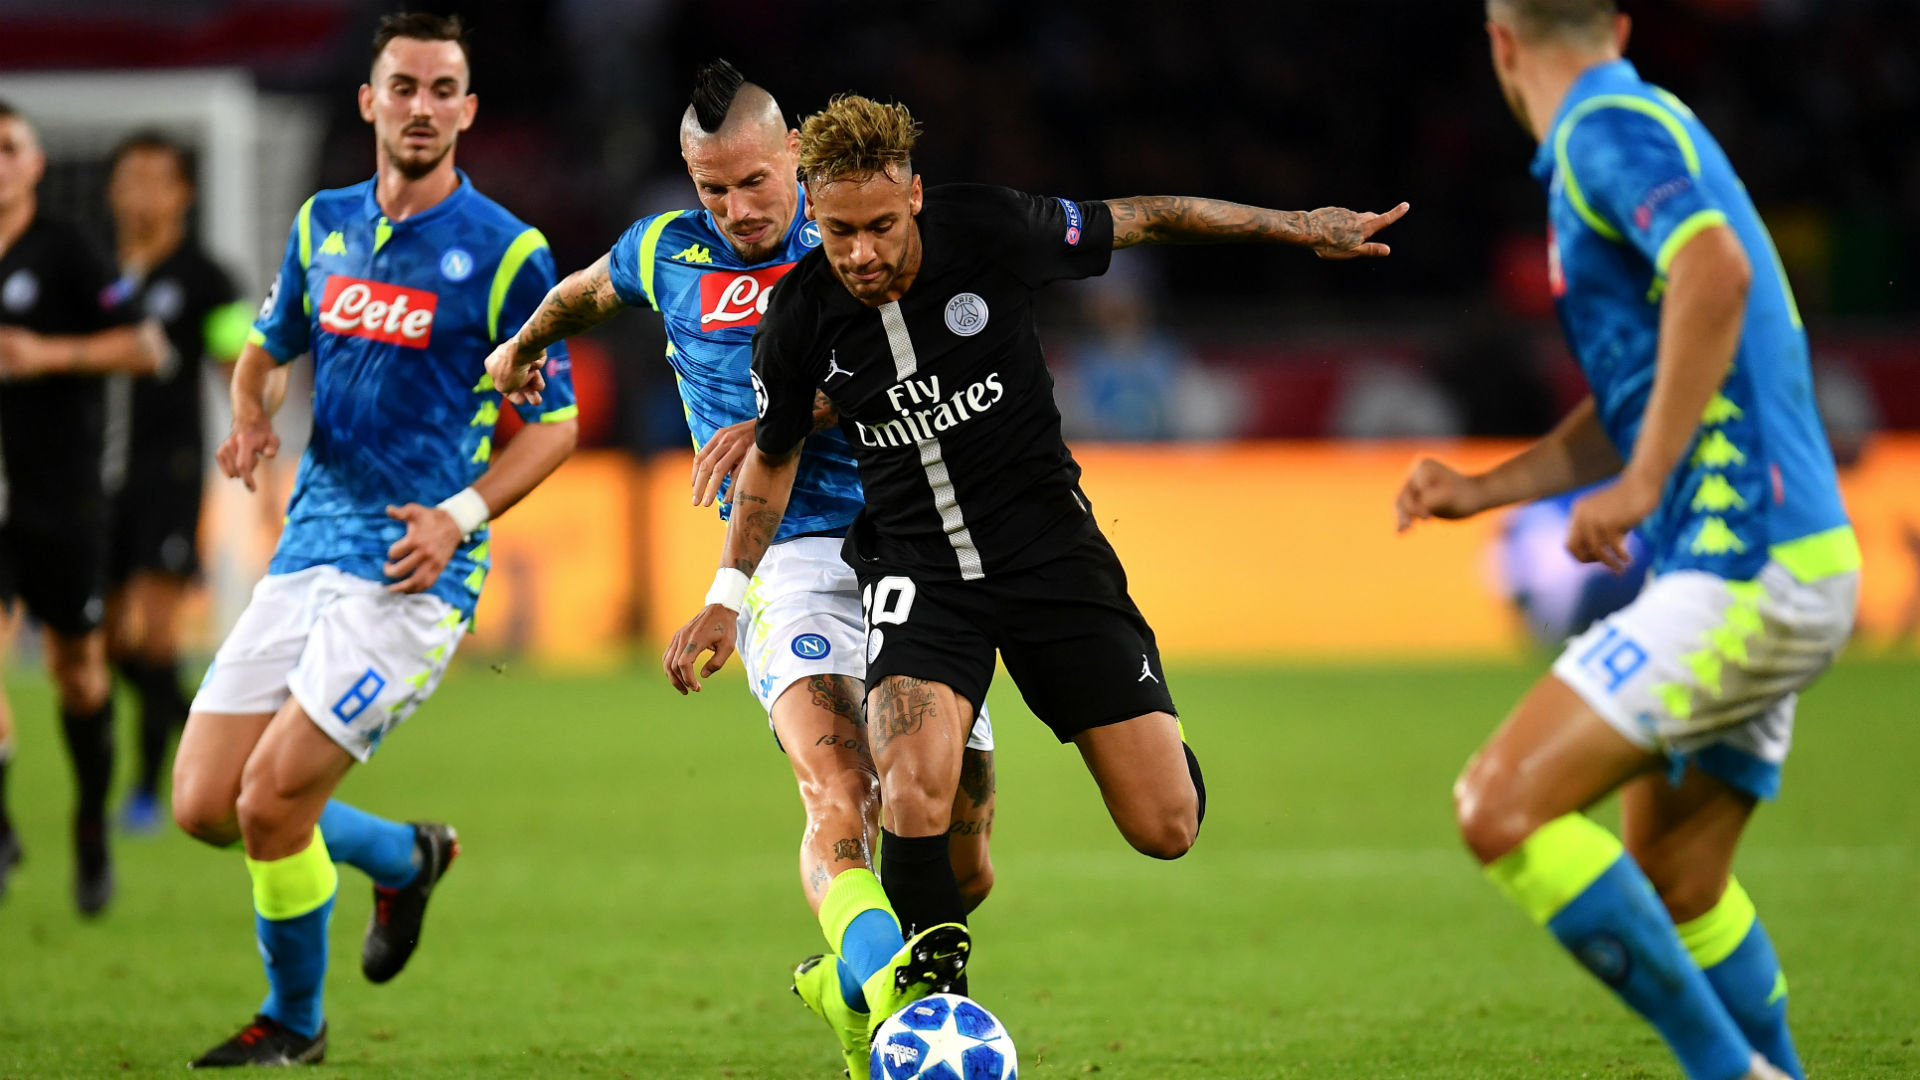 Napoli v PSG: Will French champions fail another stern test?